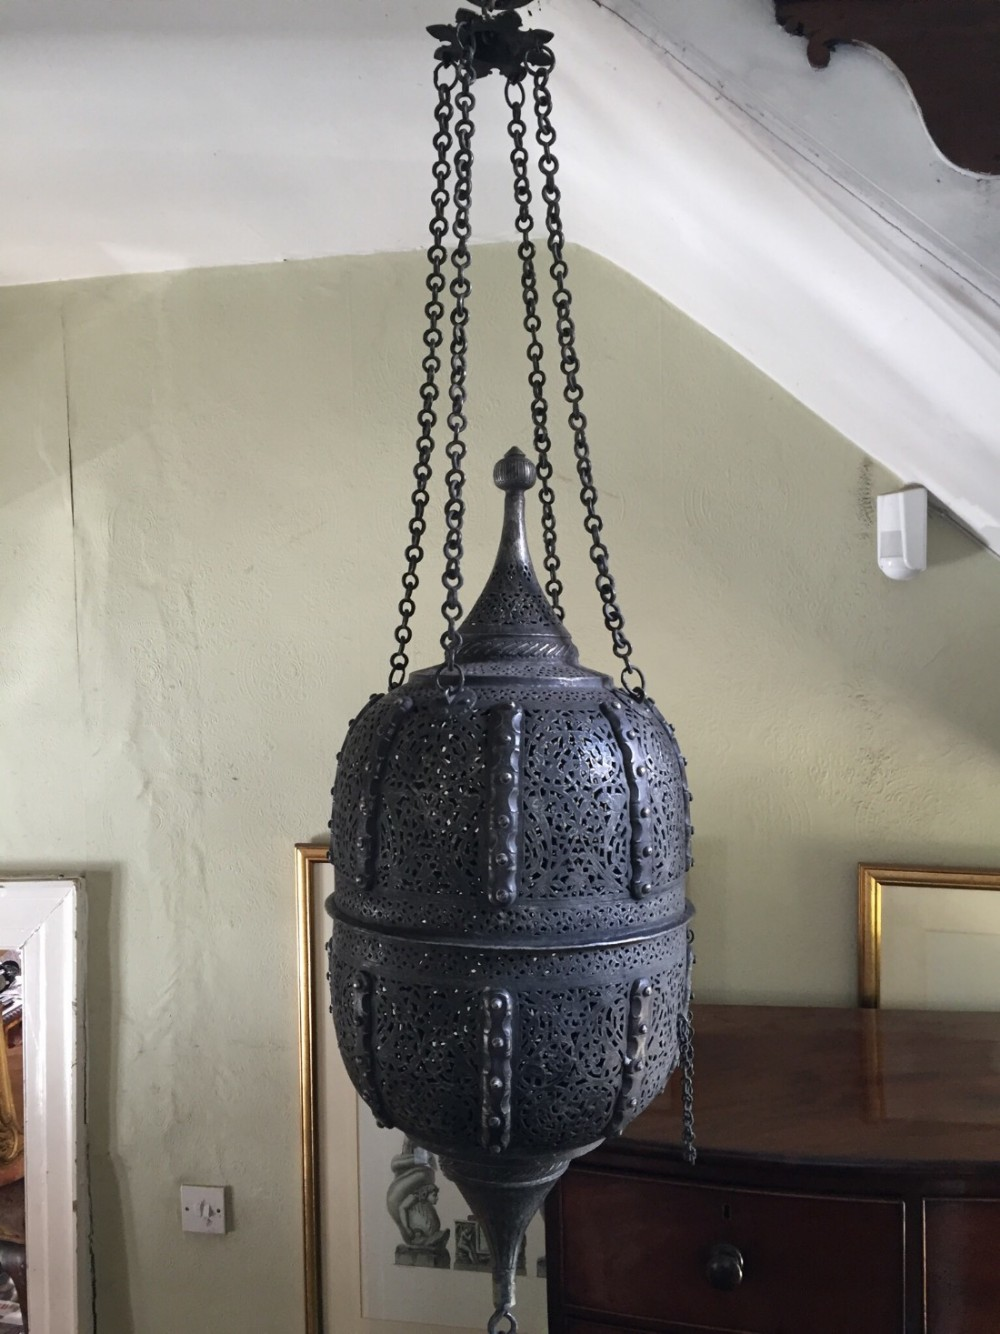 large early c20th decorative islamic design hanging lantern 'mosque' lamp